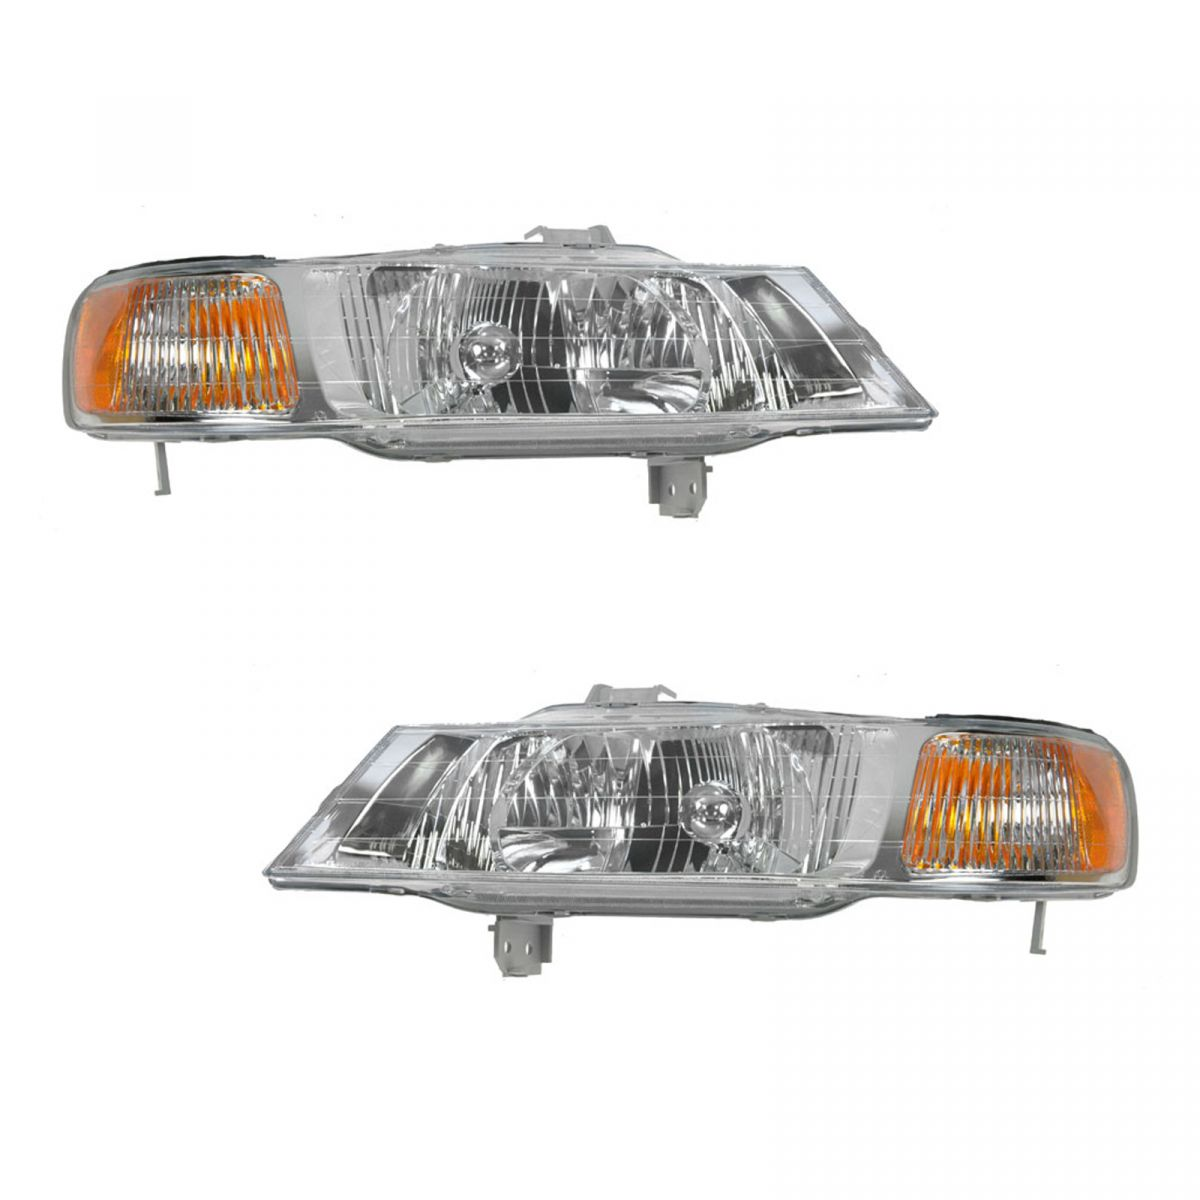 headlights headlamps left right pair set new for 99 04. Black Bedroom Furniture Sets. Home Design Ideas